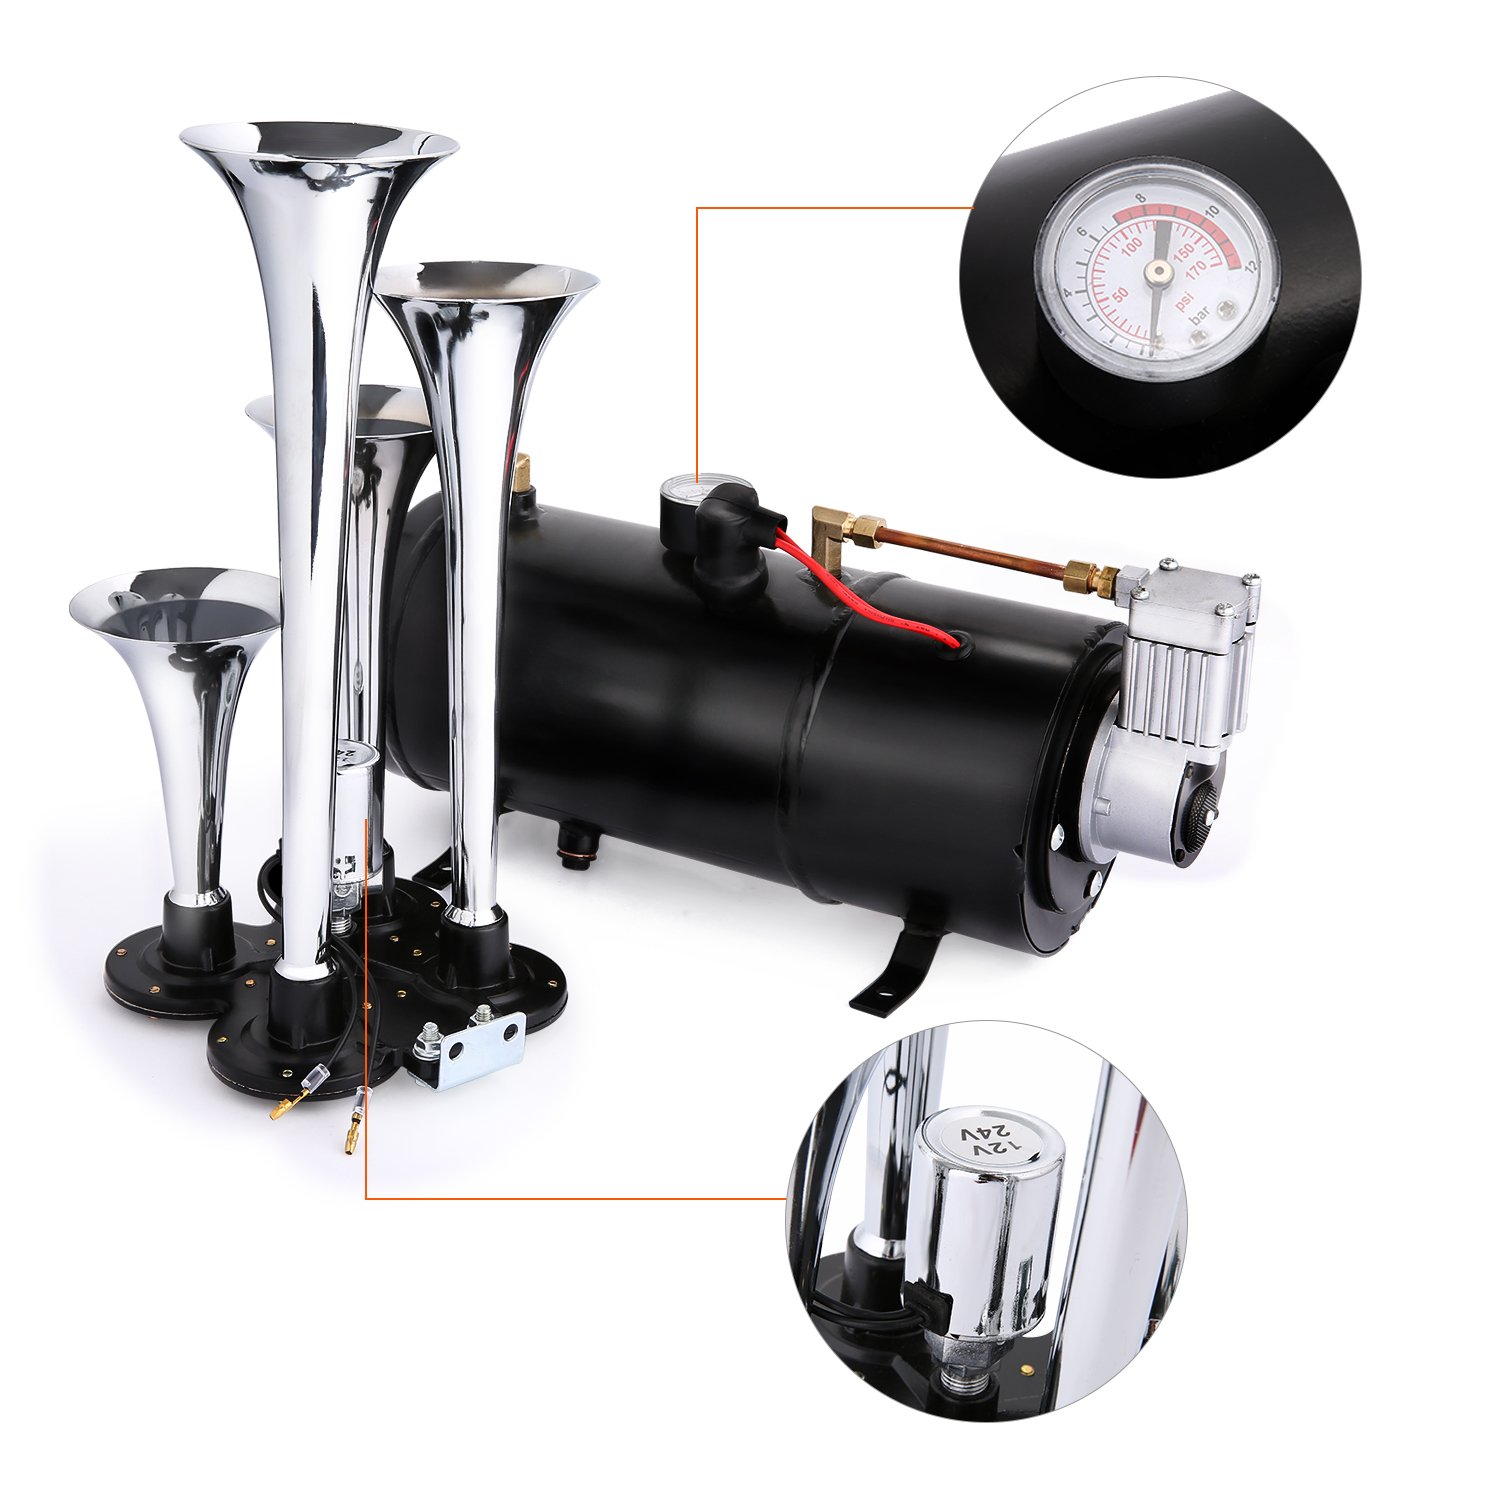 Super Loud 4 Trumpet Train Air Horns kit for Trucks for Car Jeep or SUV Truck Train Van Boat with 120 PSI 12V Compressor and Gauge